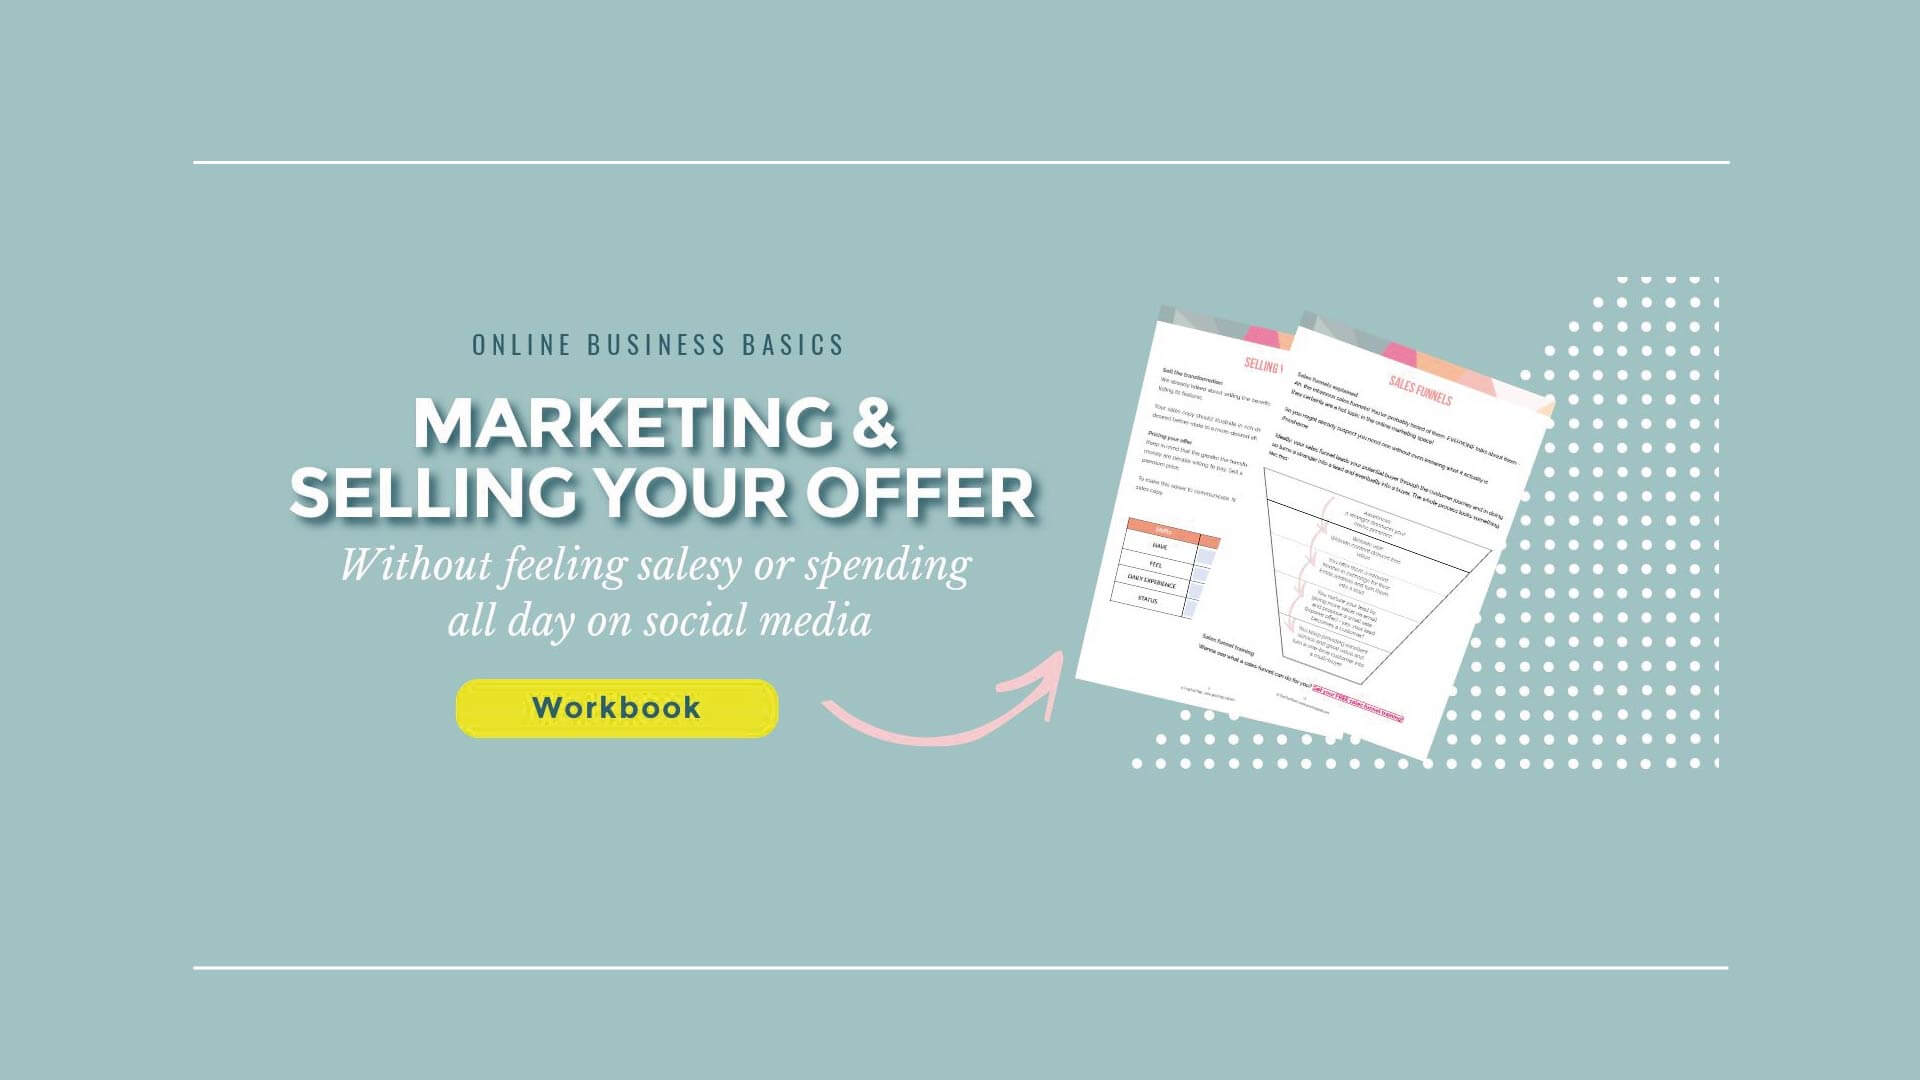 Work-From-Home Made Easy - Marketing & Selling